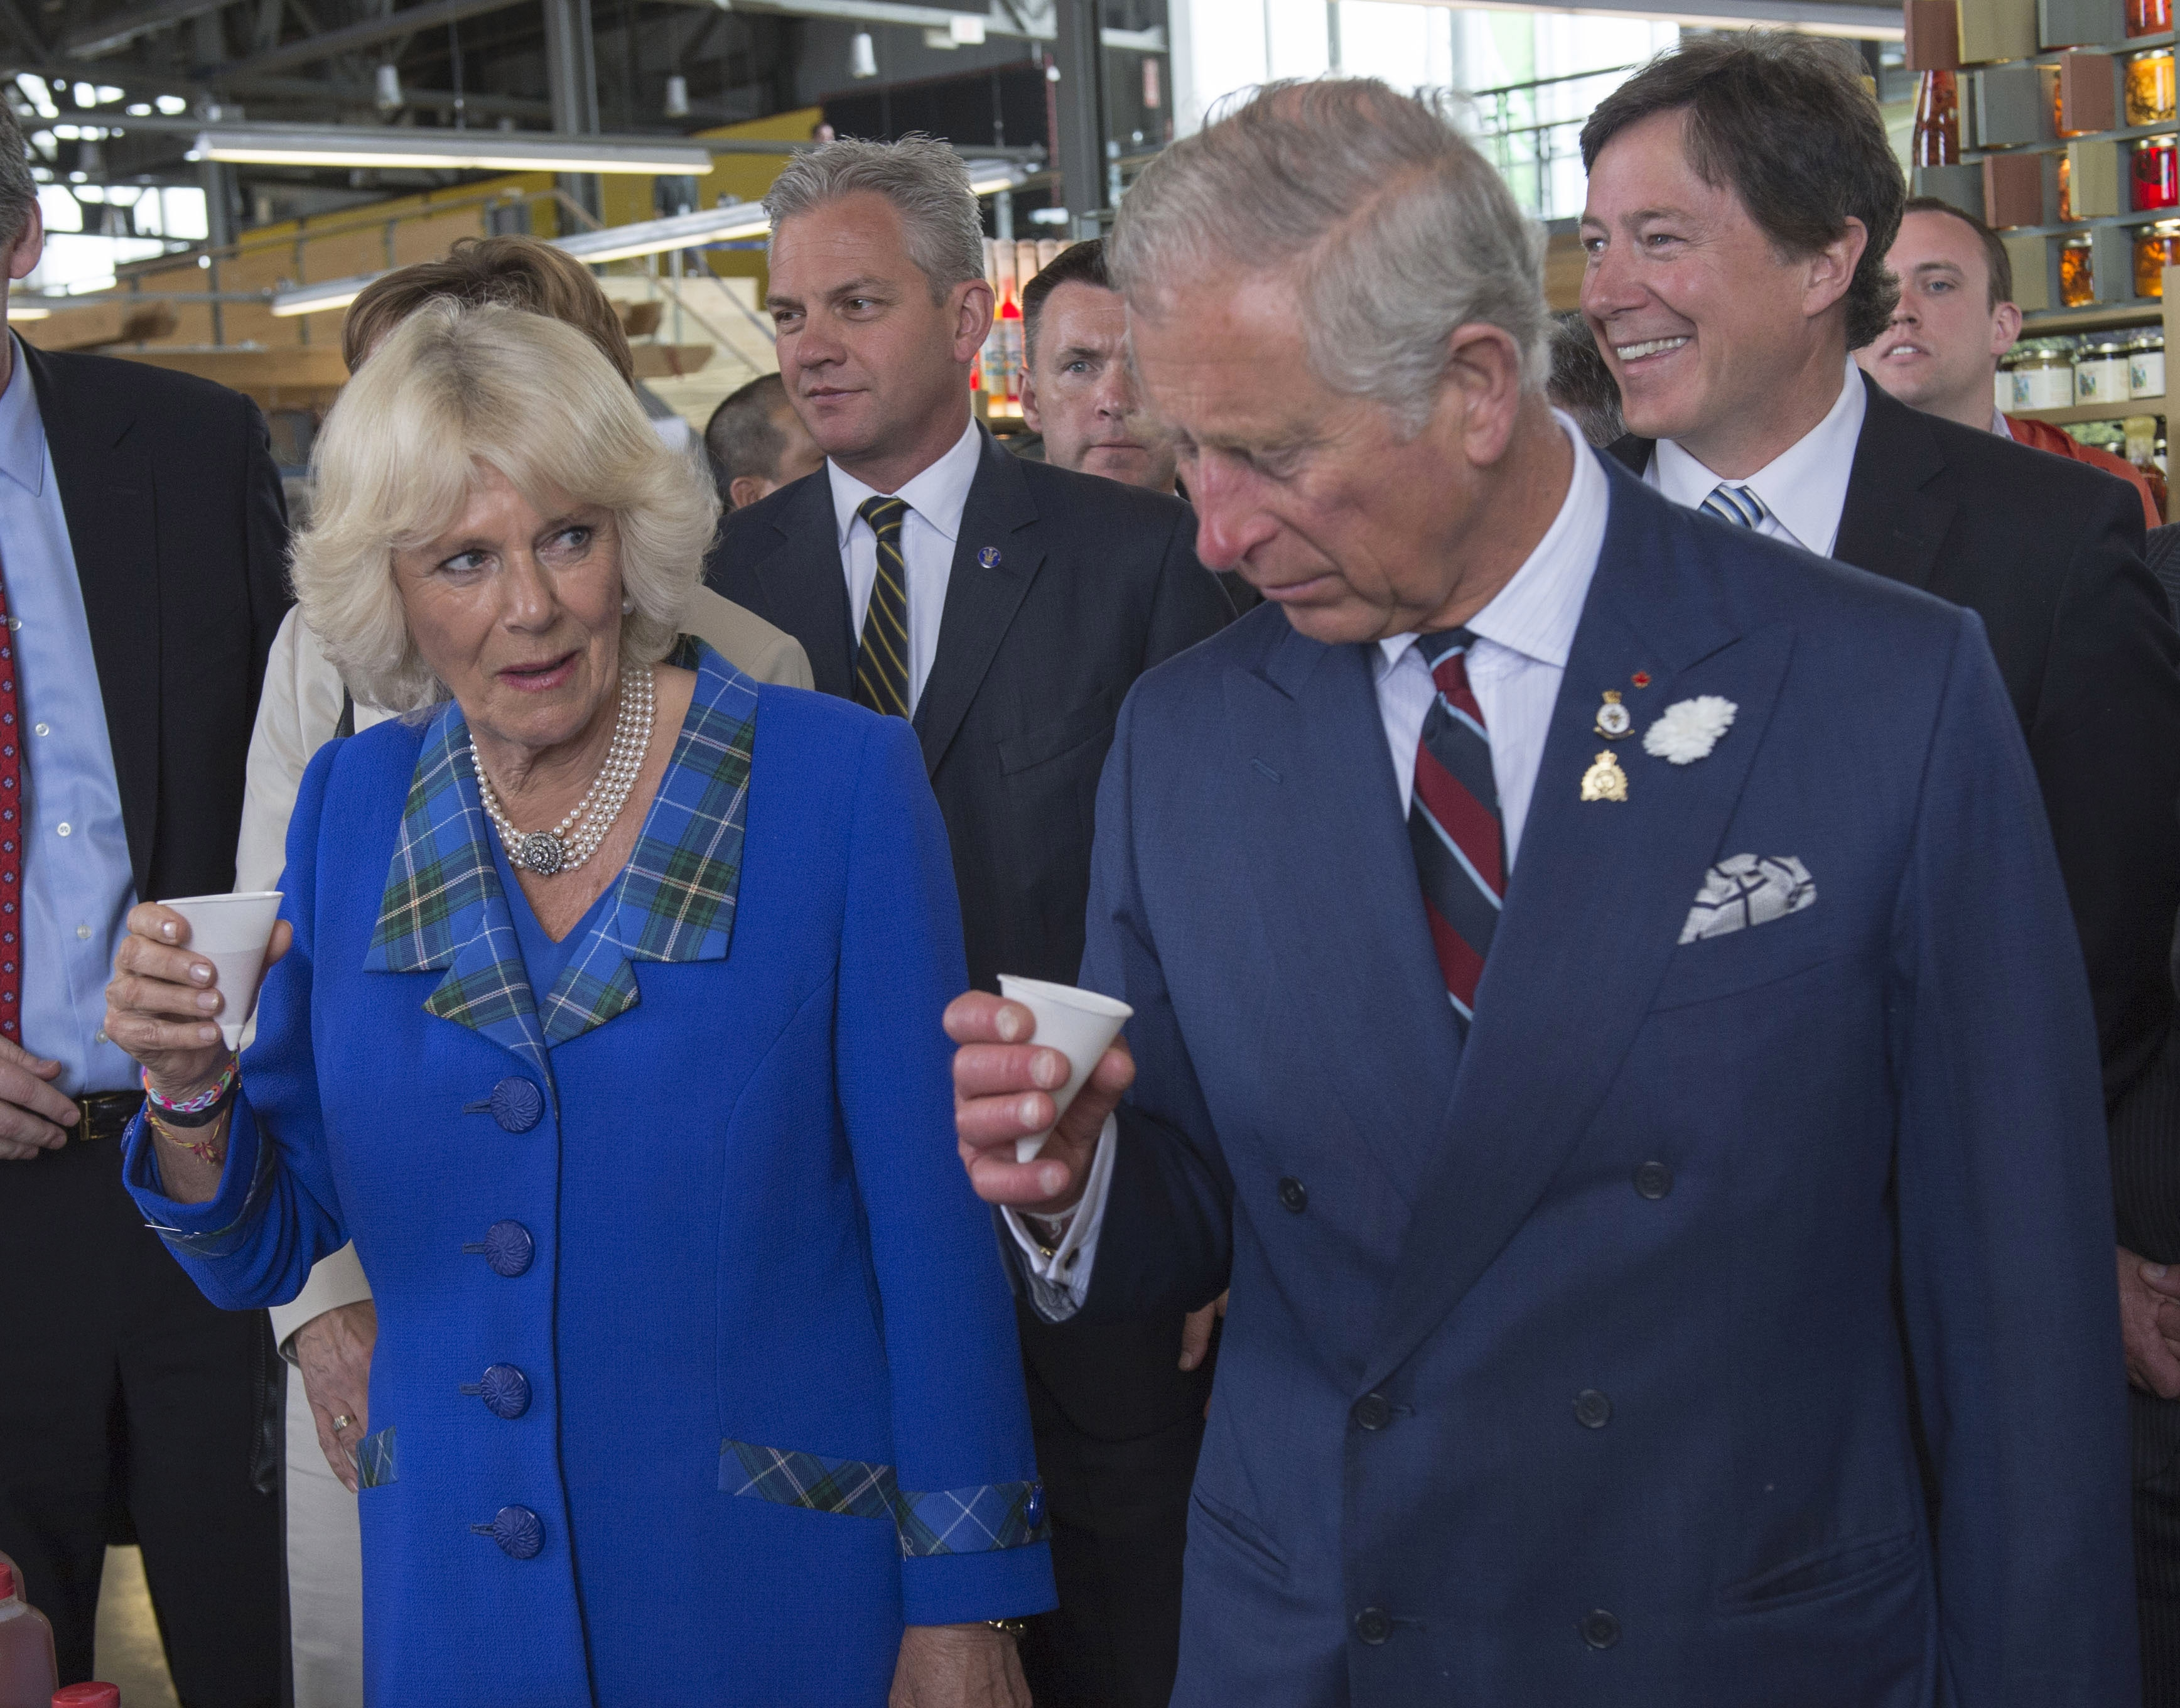 People of taste: Camilla, Duchess of Cornwall, and Prince Charles, Prince of Wales, sample some food at Seaport Farmer's Market in Halifax, Nova Scotia, Monday.